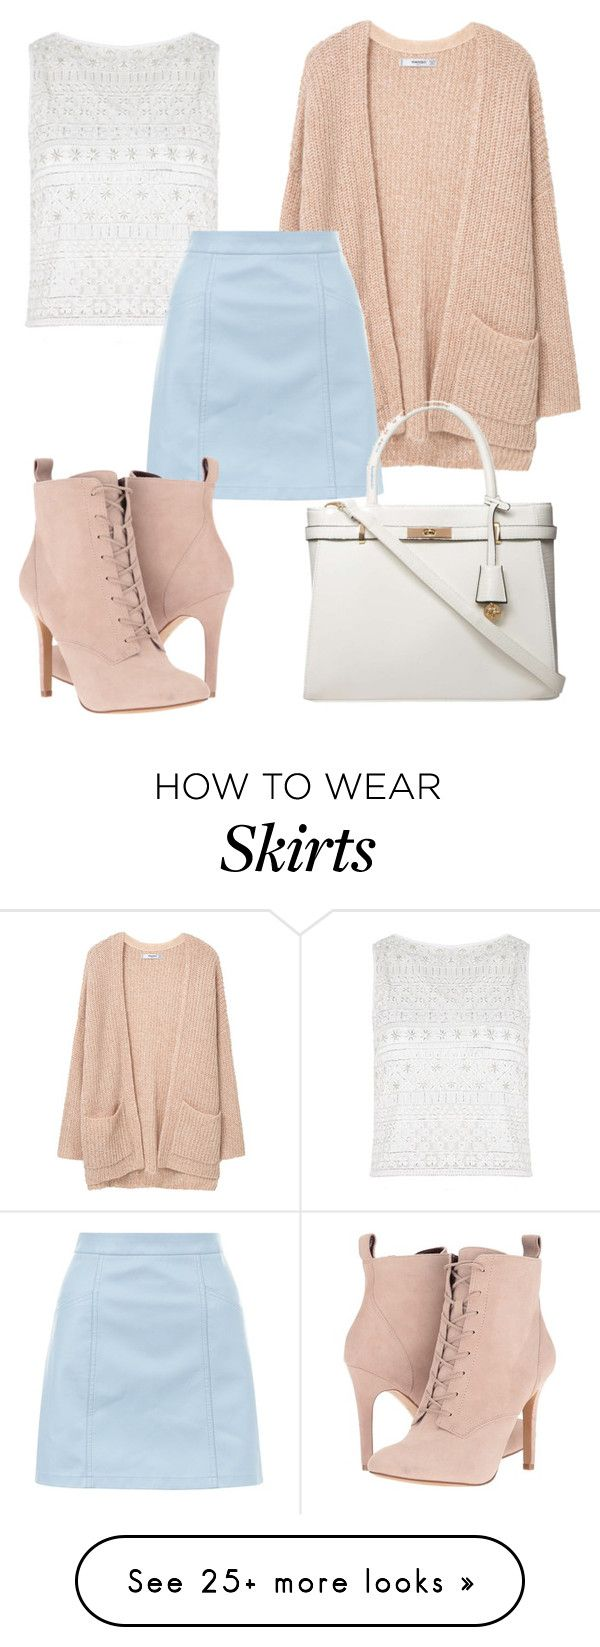 """""""Sky Skirt"""" by mosbyfatima on Polyvore featuring MANGO, Alice + Olivia, New Look, BCBGeneration and Dorothy Perkins"""